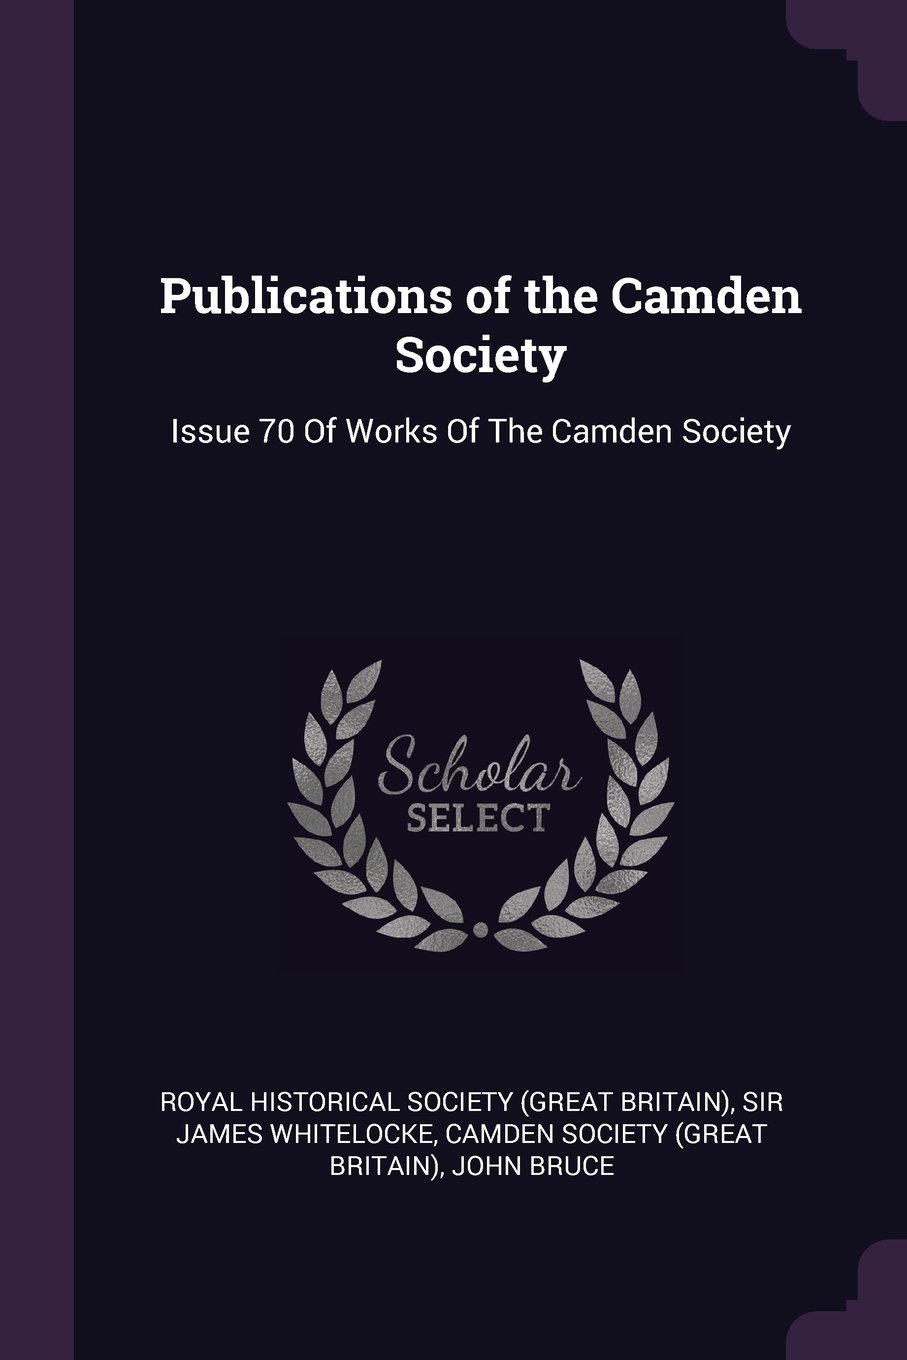 Publications of the Camden Society: Issue 70 Of Works Of The Camden Society by Palala Press